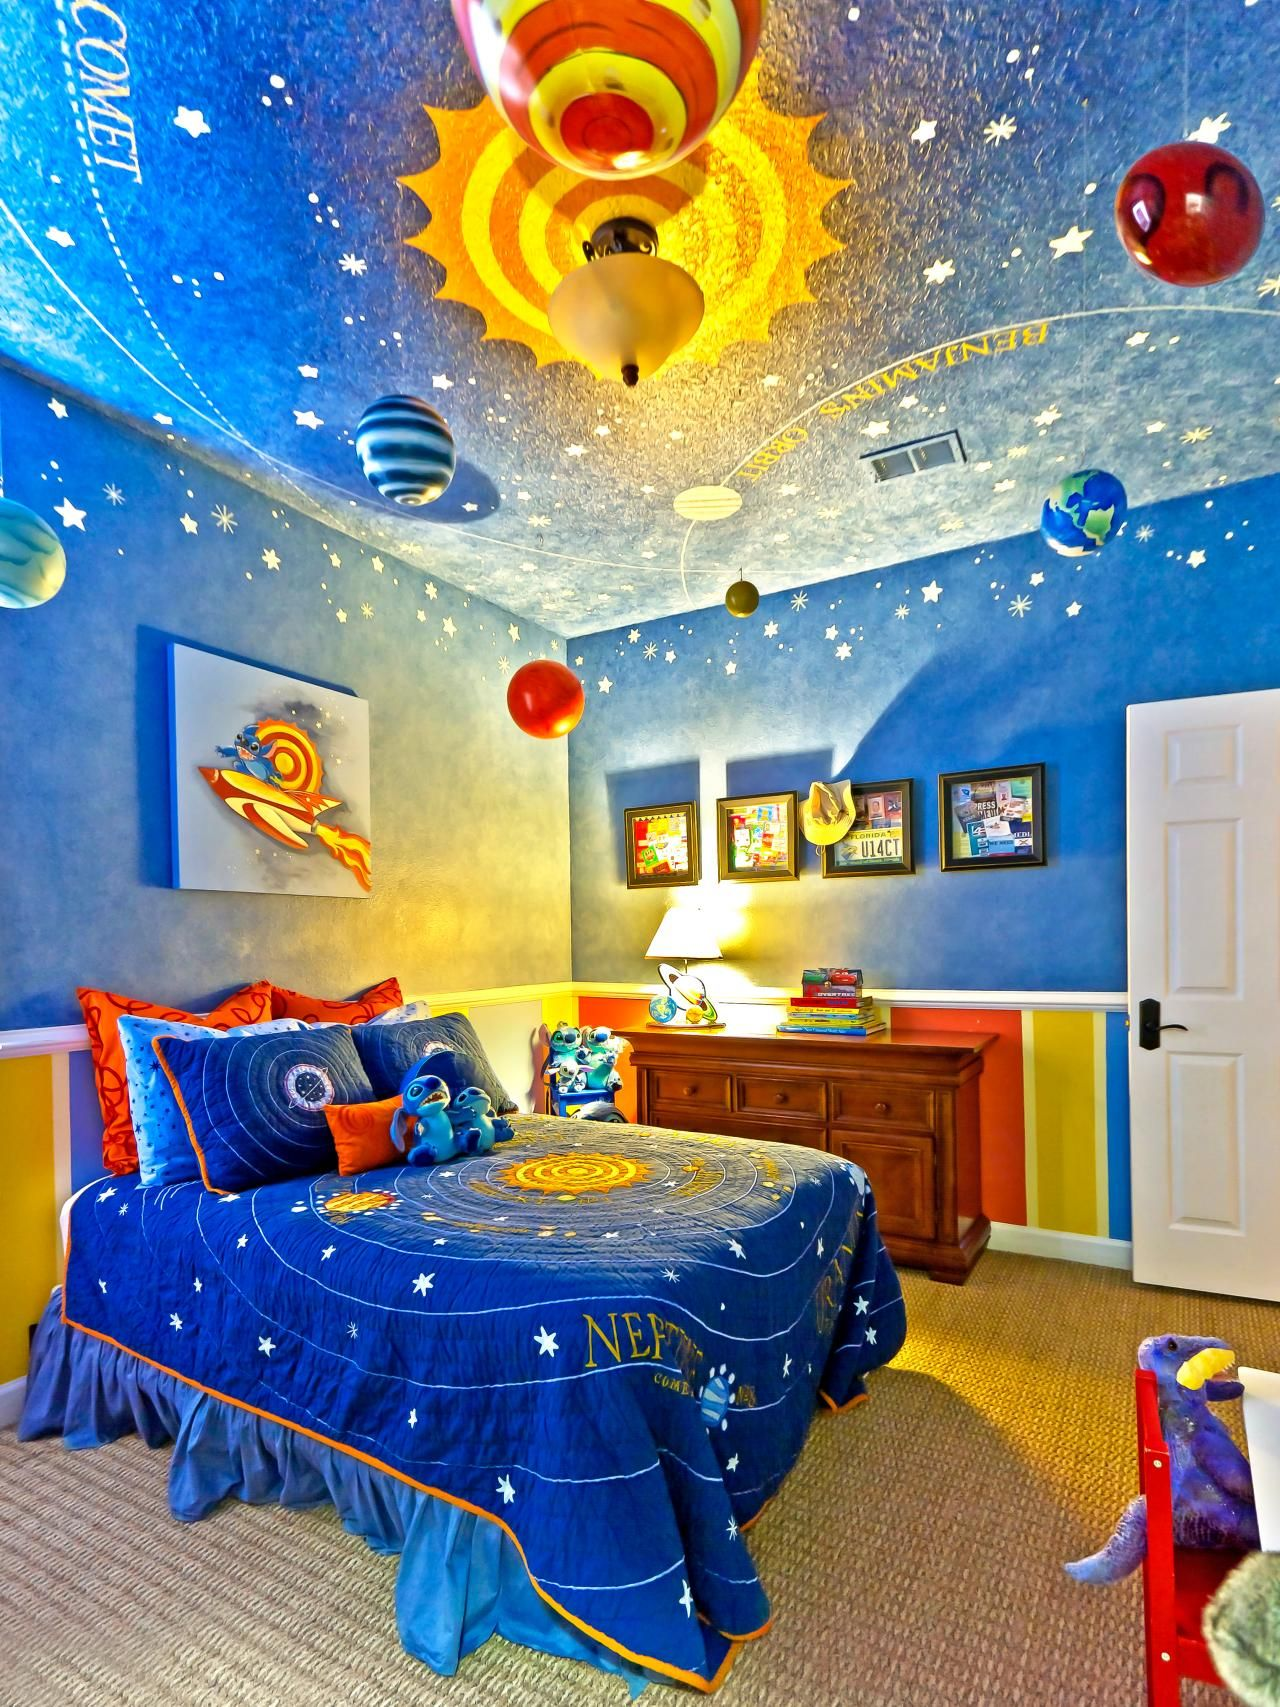 +25 Marvelous Kidsu0027 Rooms Ceiling Designs Ideas   Raising Your Kids  Properly Is The